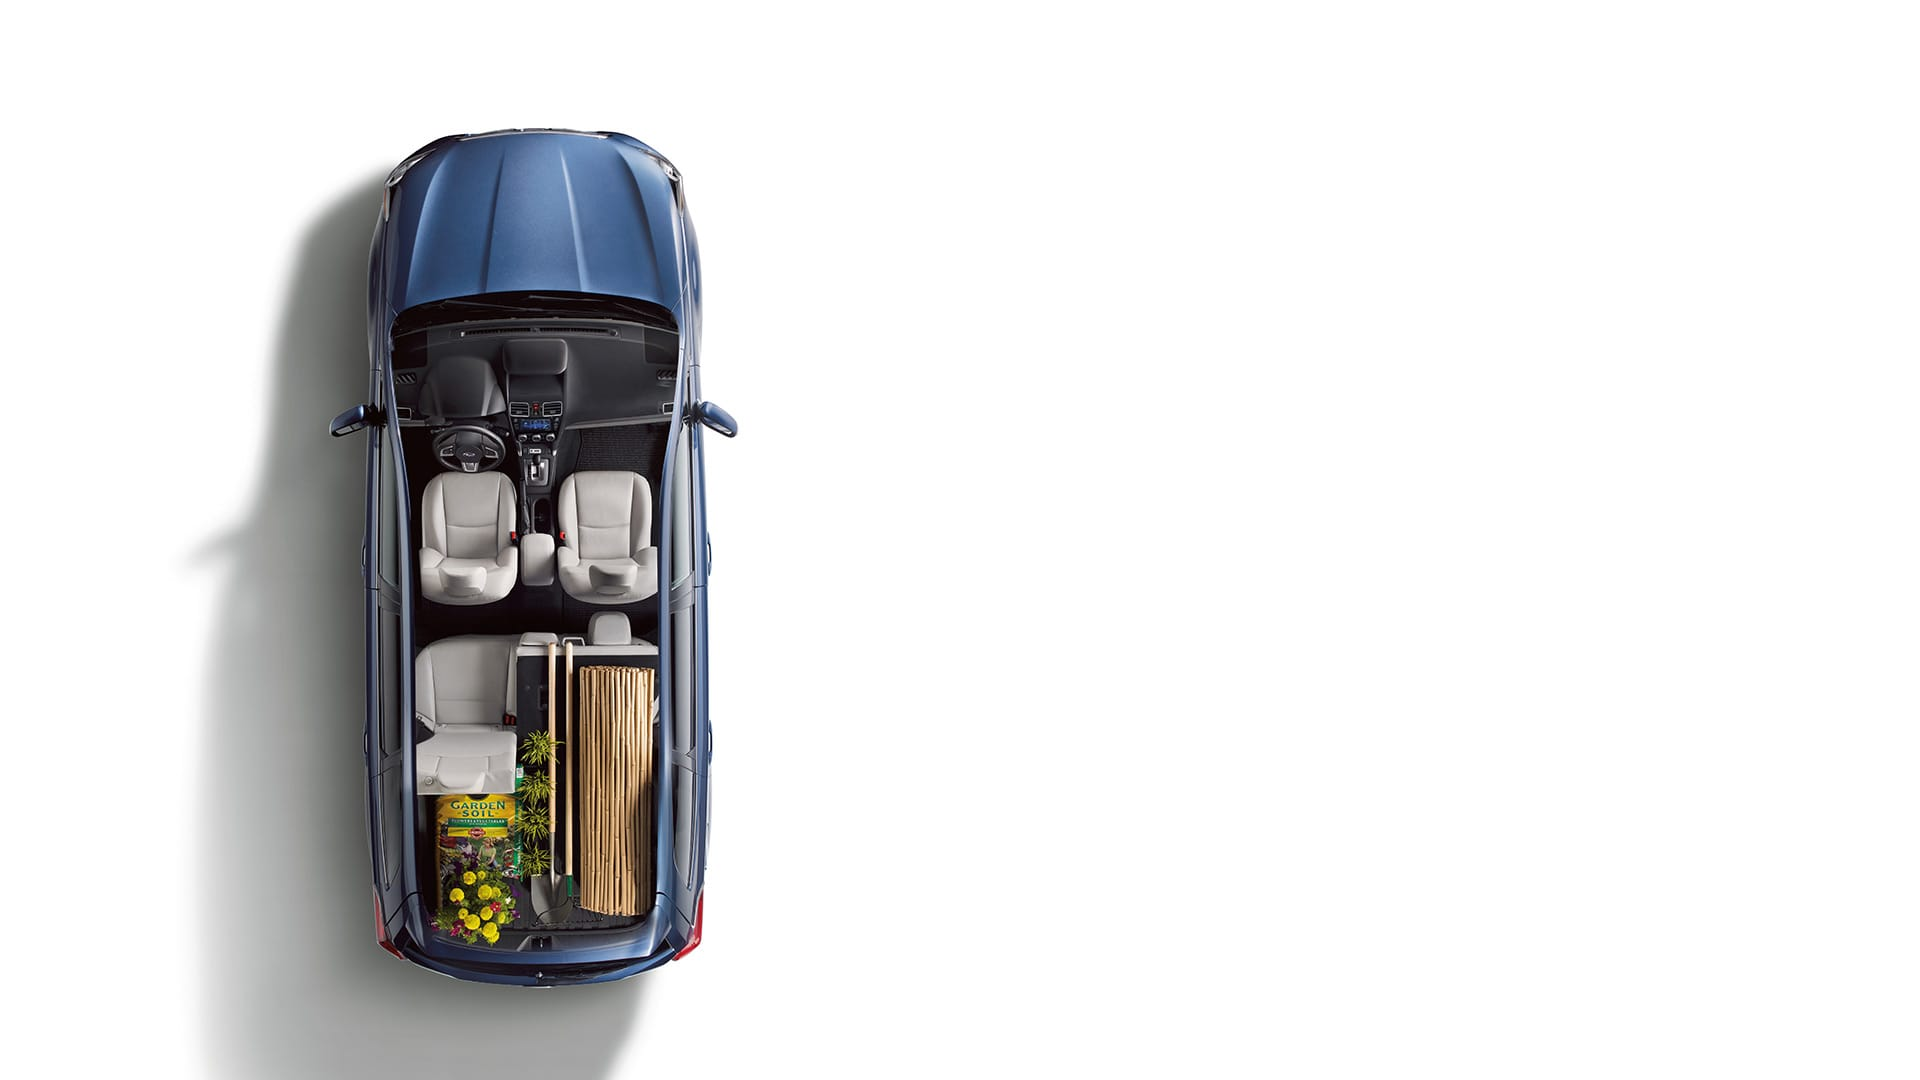 The cargo area makes excellent use of its generous space with hooks to help keep grocery bags from spilling during driving, plus available accessory items like cargo nets to keep things secure and a cargo tray<sup>2</sup> to help protect against mud and grime.